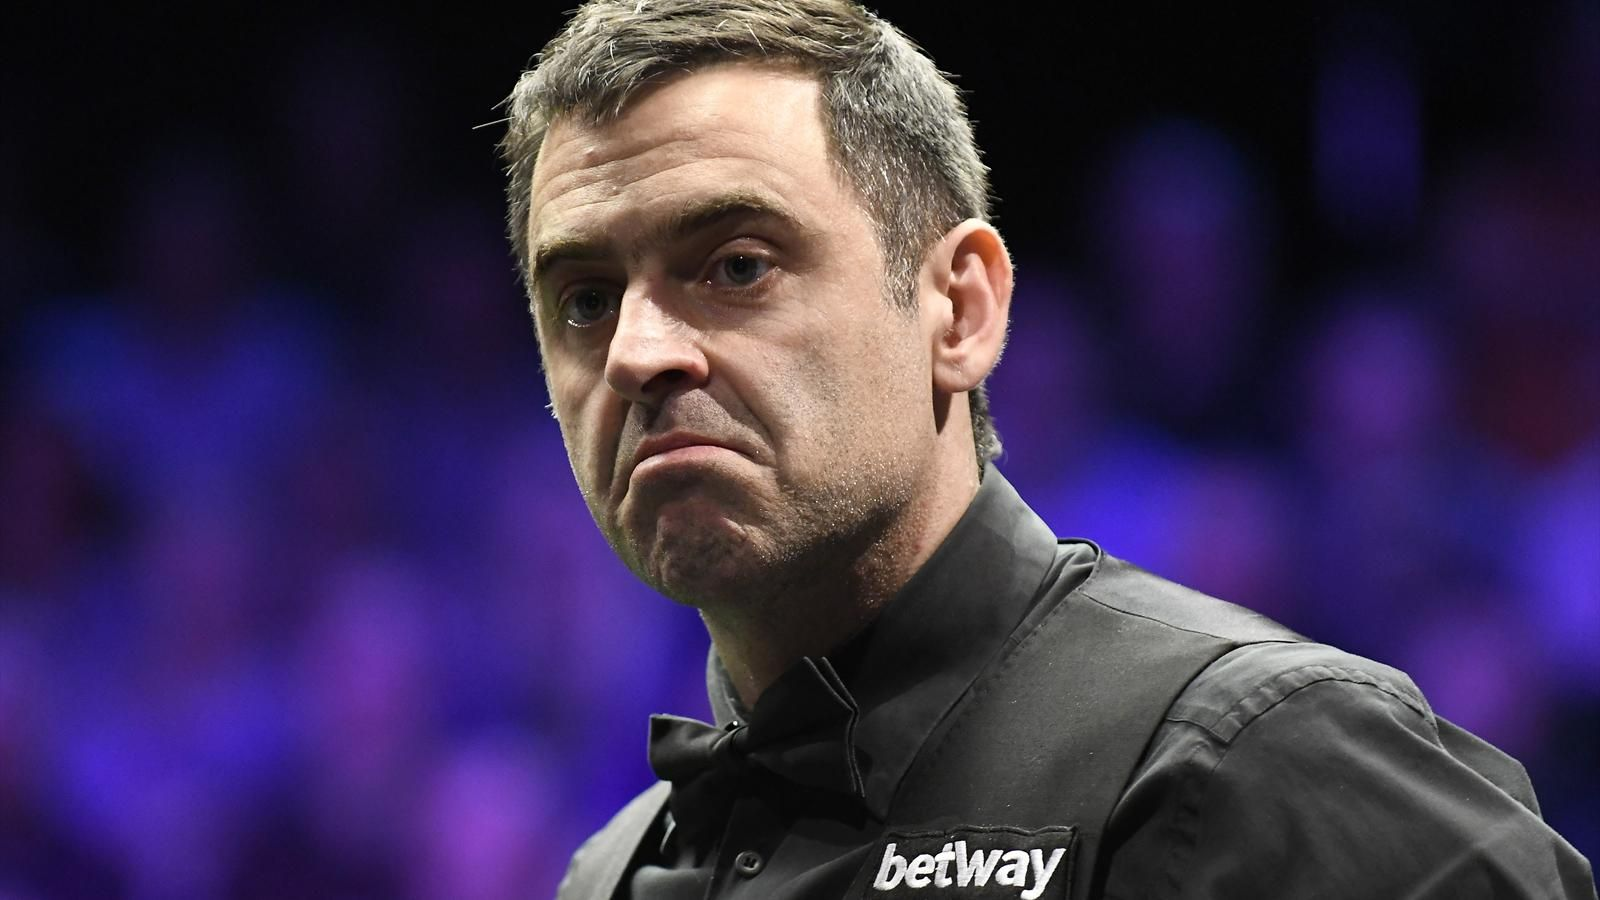 Ronnie O'Sullivan looks on in the final of the Betway UK Championship after defeating Mark Allen 10-6